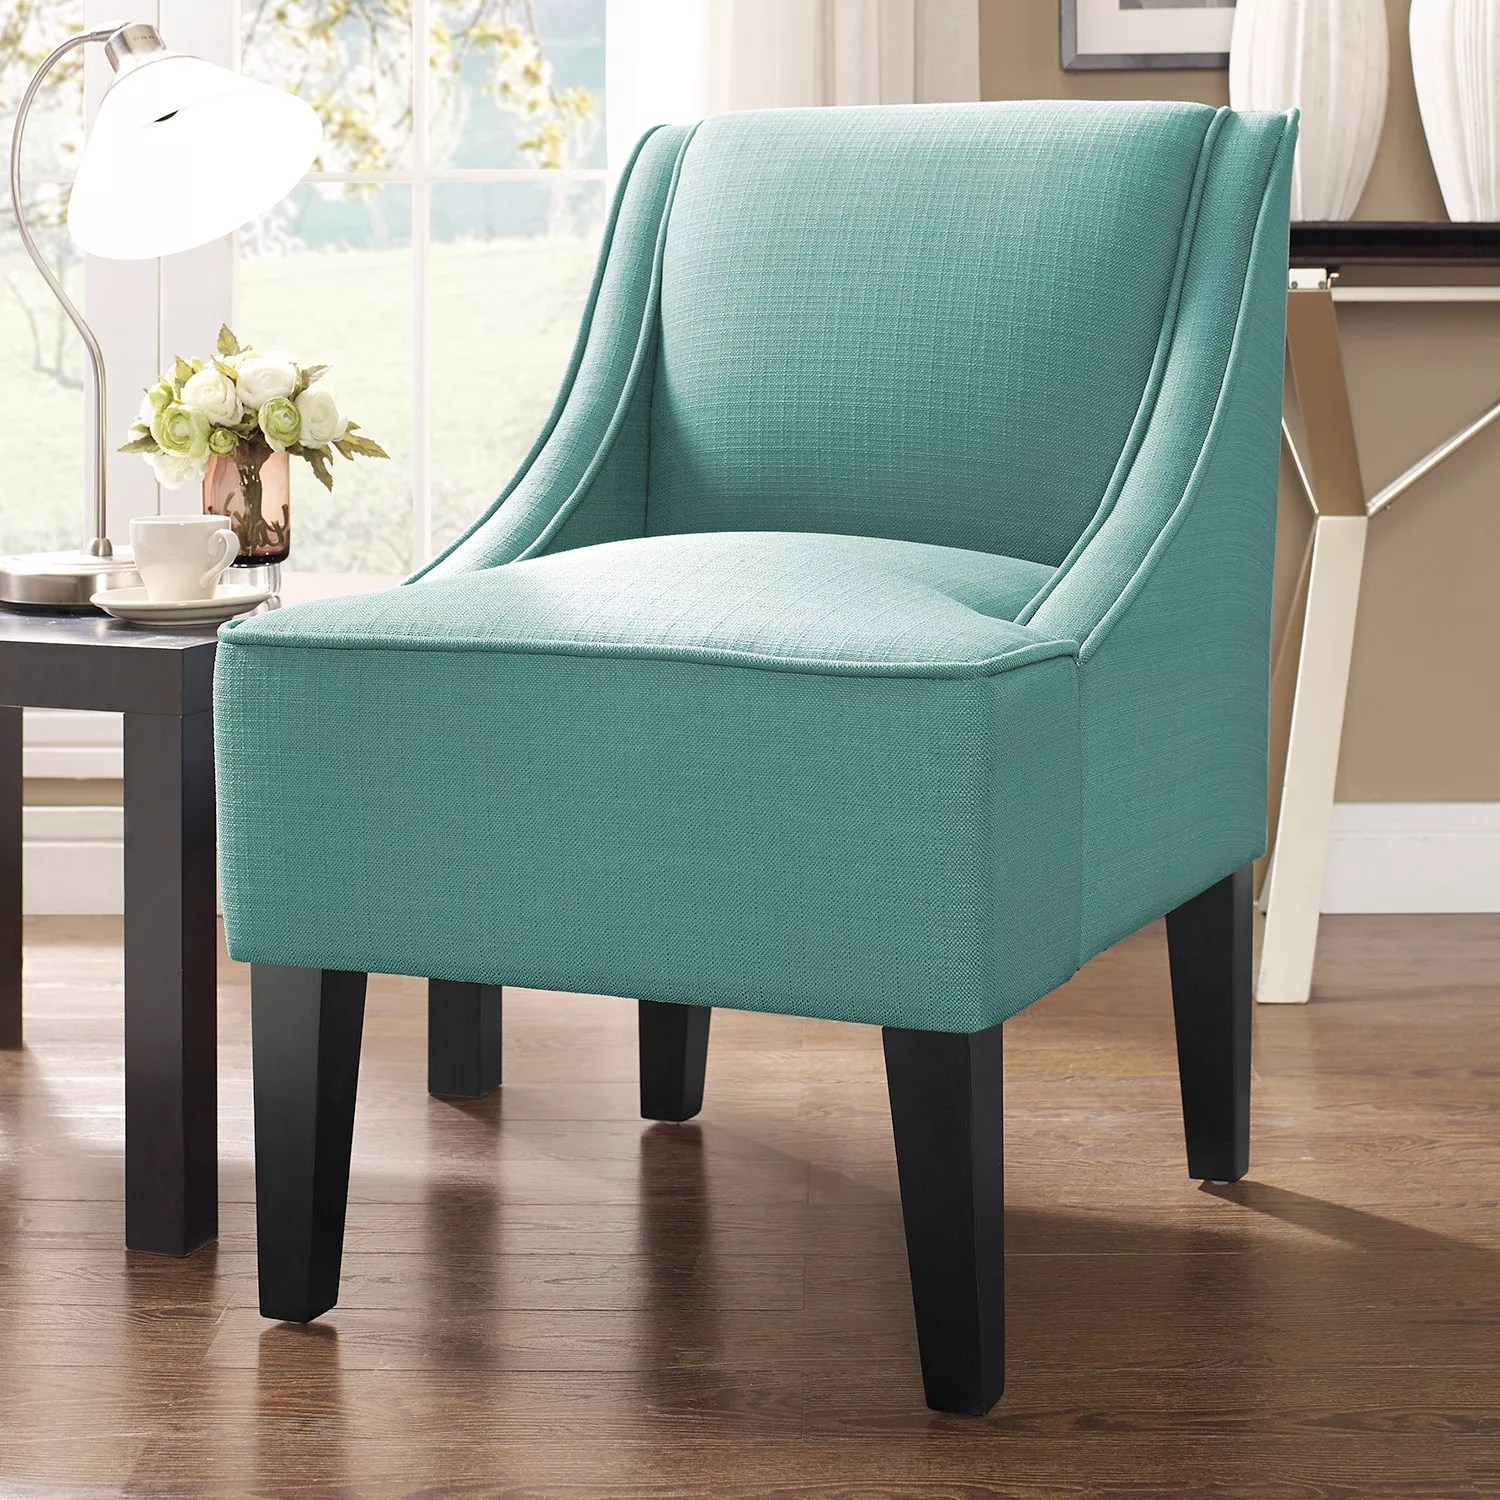 dorm chairs kohls tufted leather lounge chair student urban home interior kohl s rh com